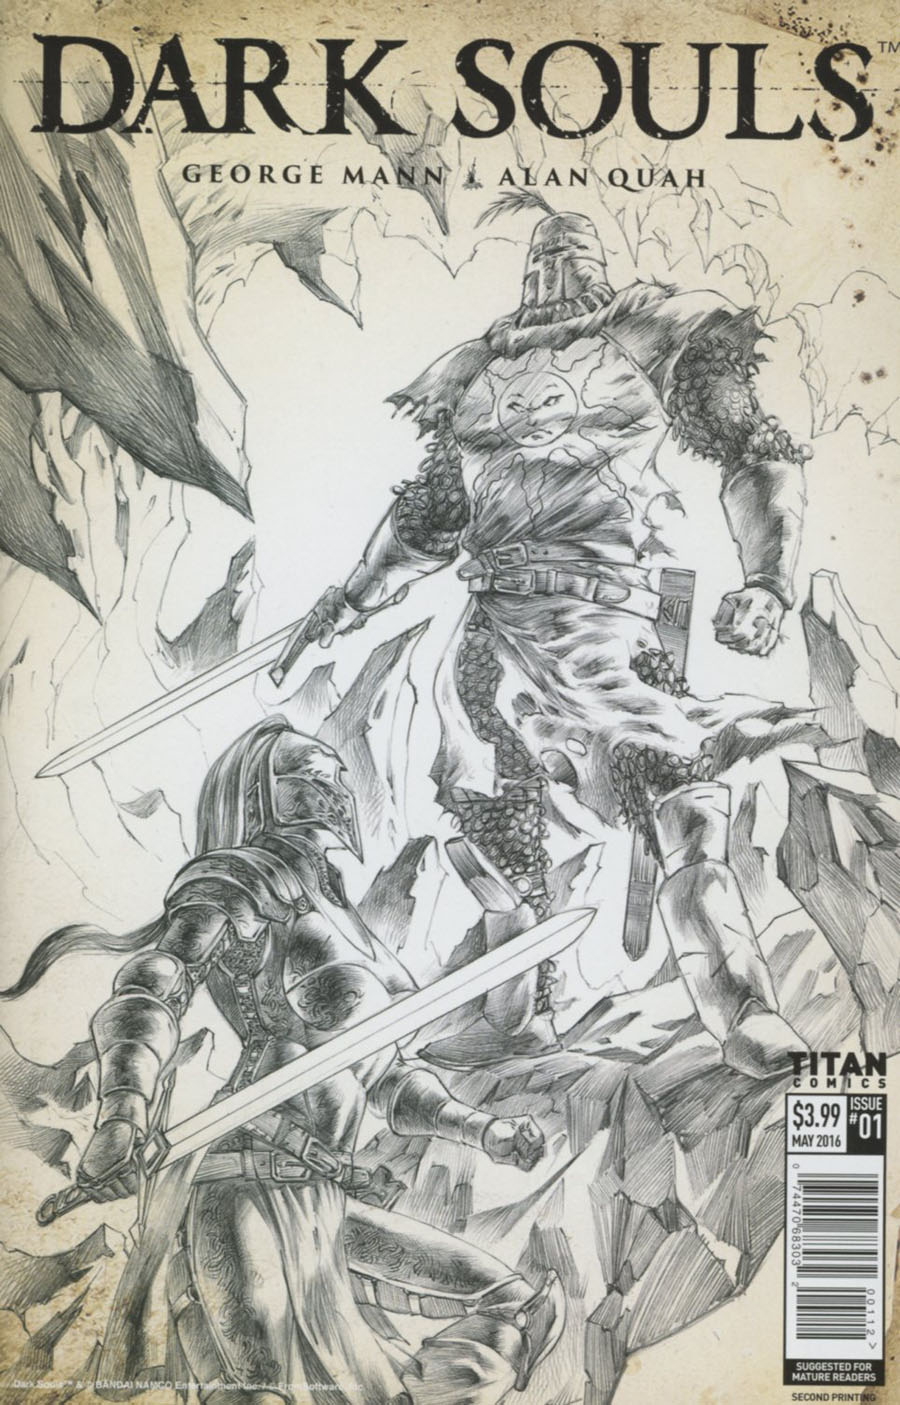 Dark Souls #1 Cover F 2nd Ptg Alan Quah Variant Cover